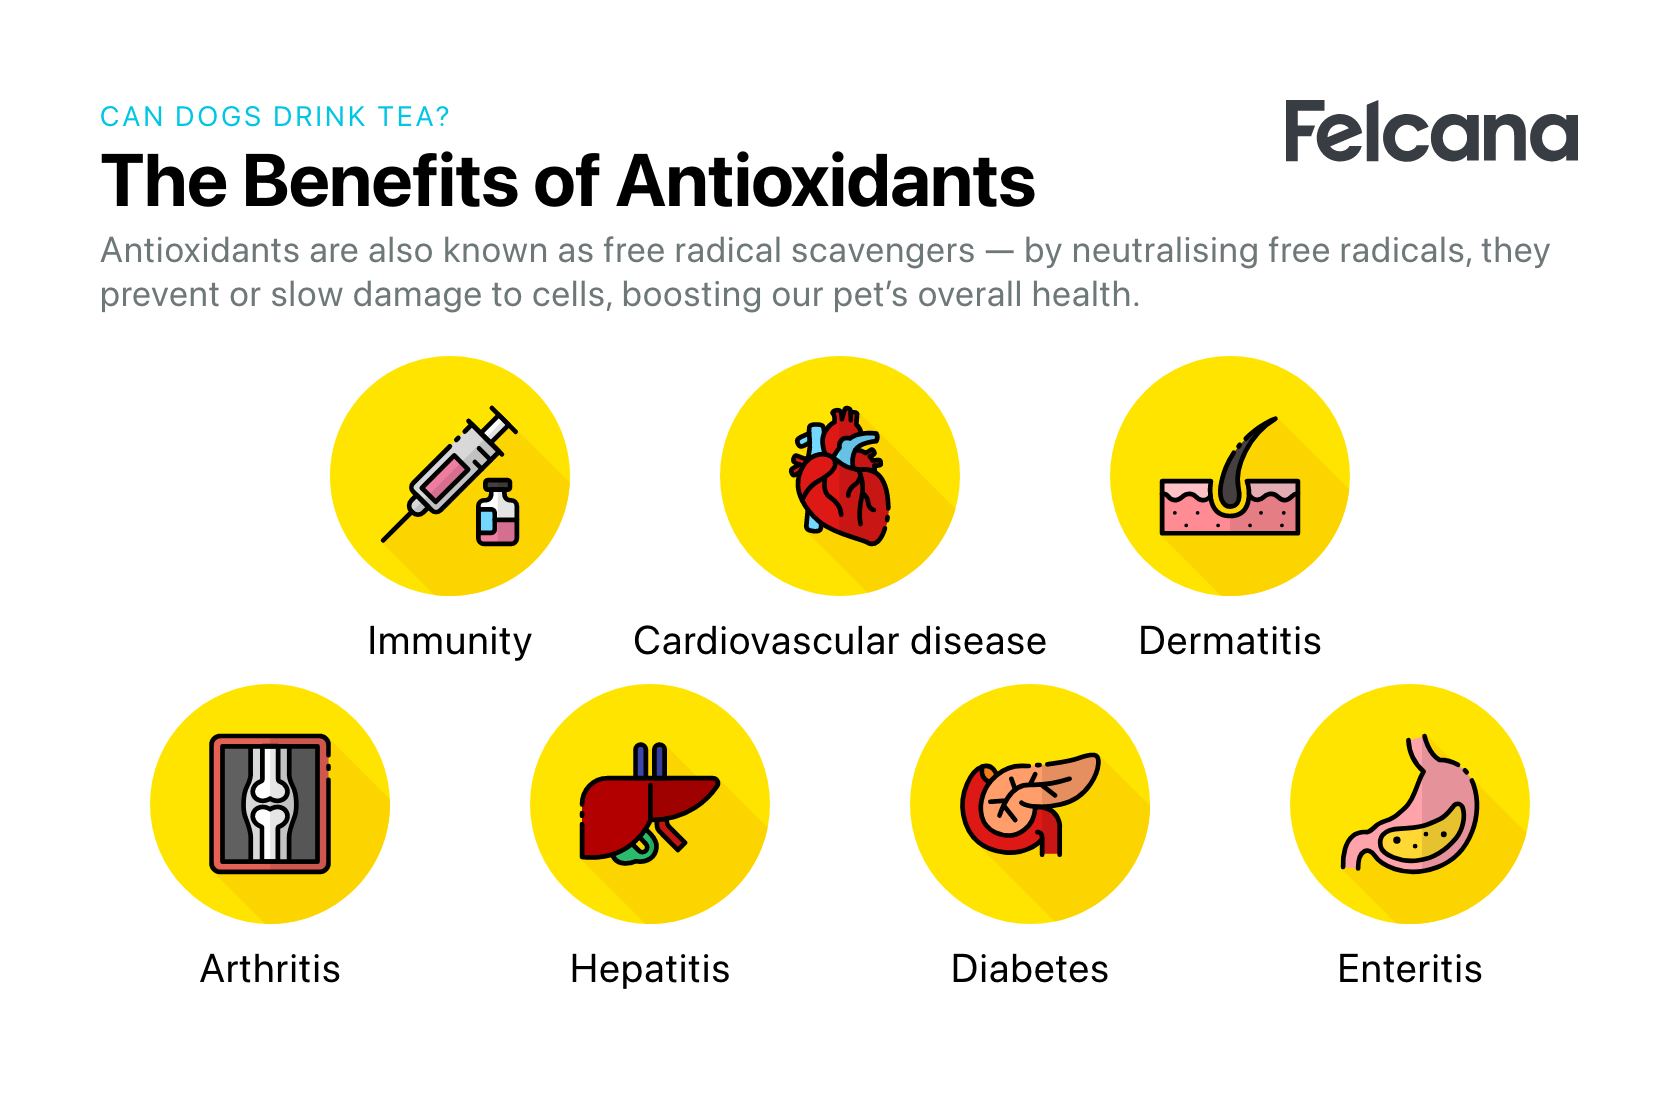 Benefits of antioxidants include neutralizing free radicals, preventing or slowing damage to cells